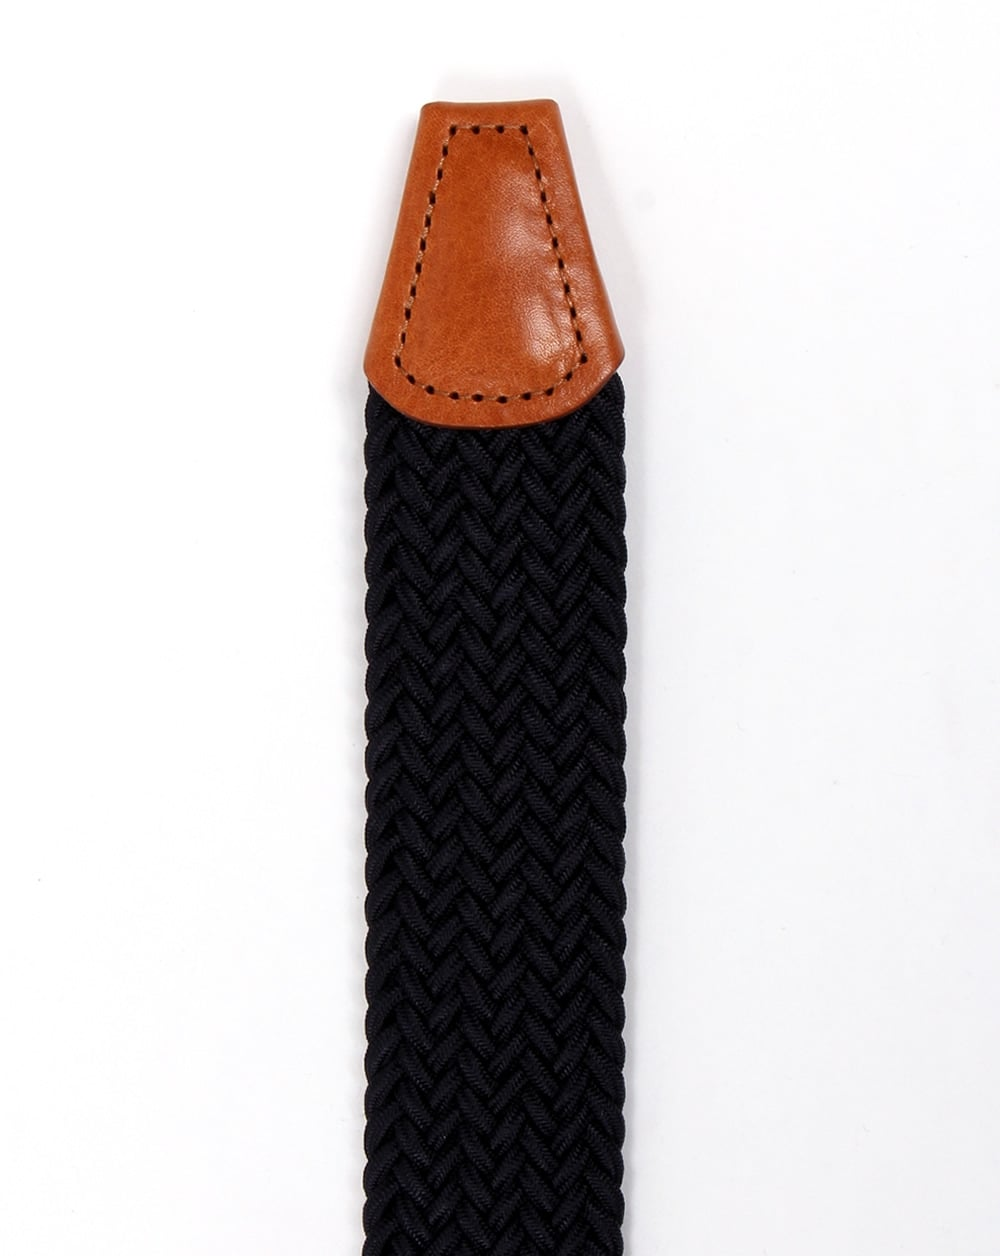 c85e7f06efdc Andersons Woven Leather Trim Belt Navy tan - Other Accessories from ...